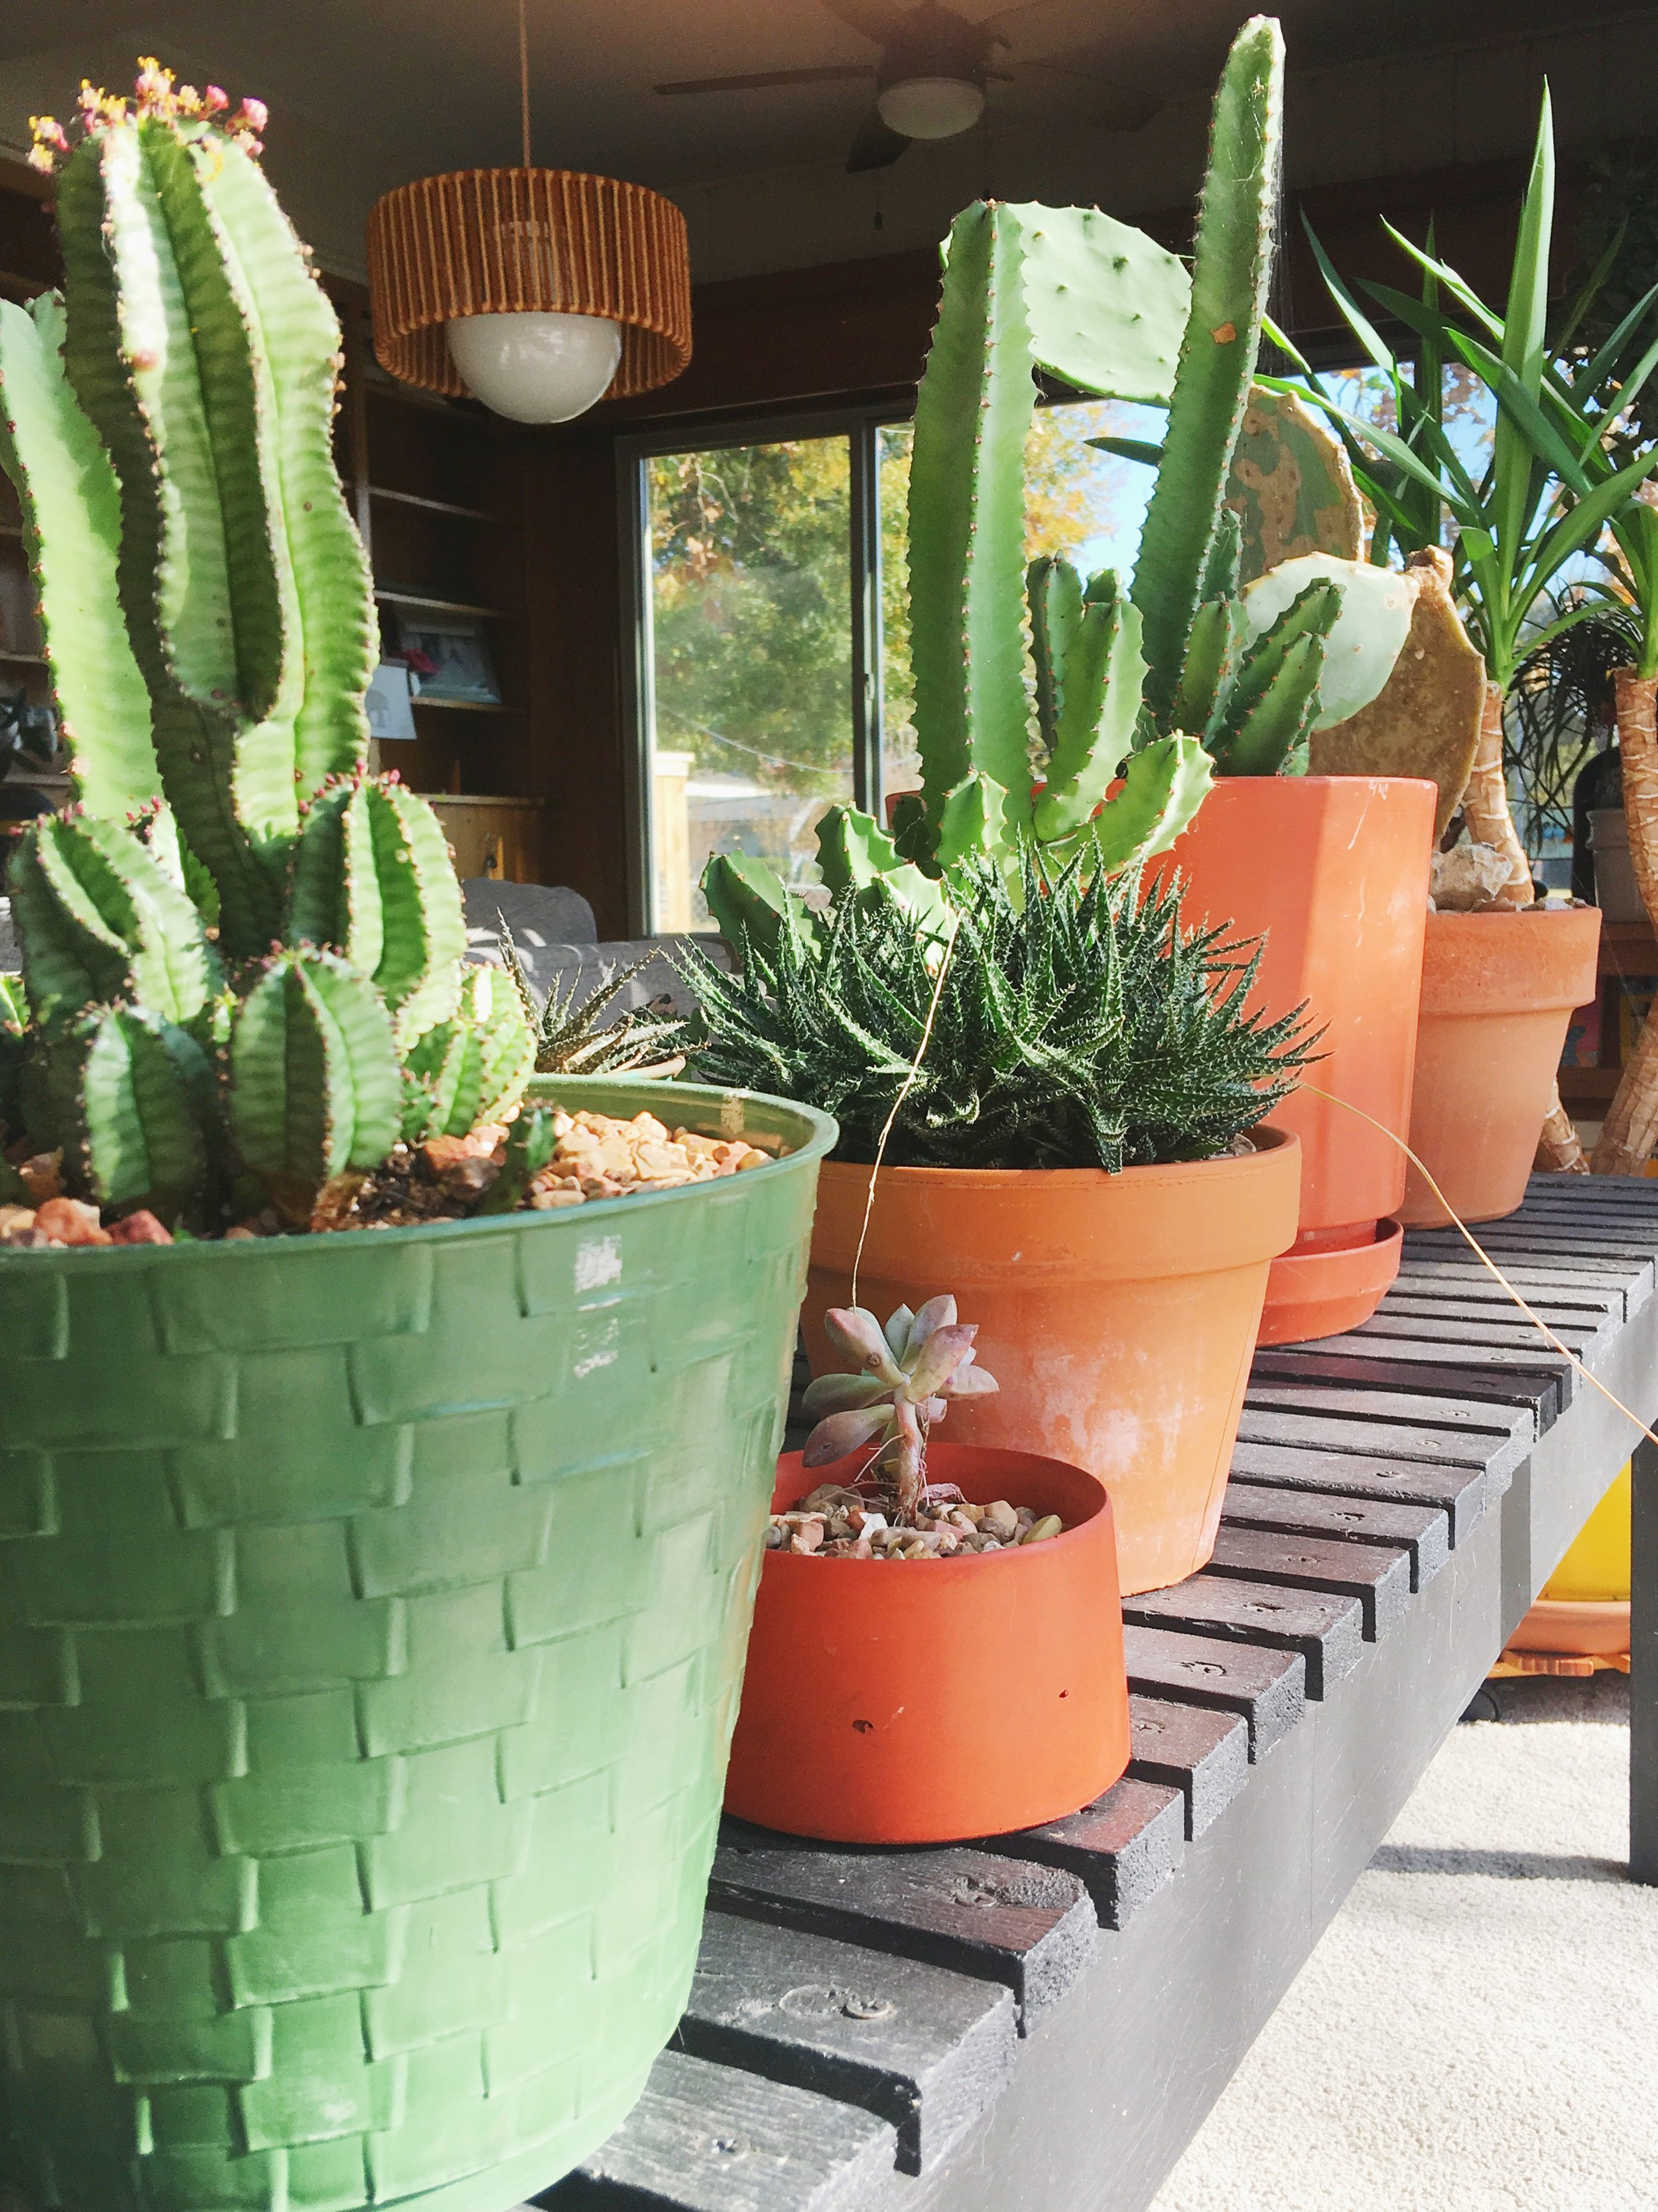 Palmer's outdoor succulents are still enjoying their new winter life indoors. How are your plants doing so far this winter?